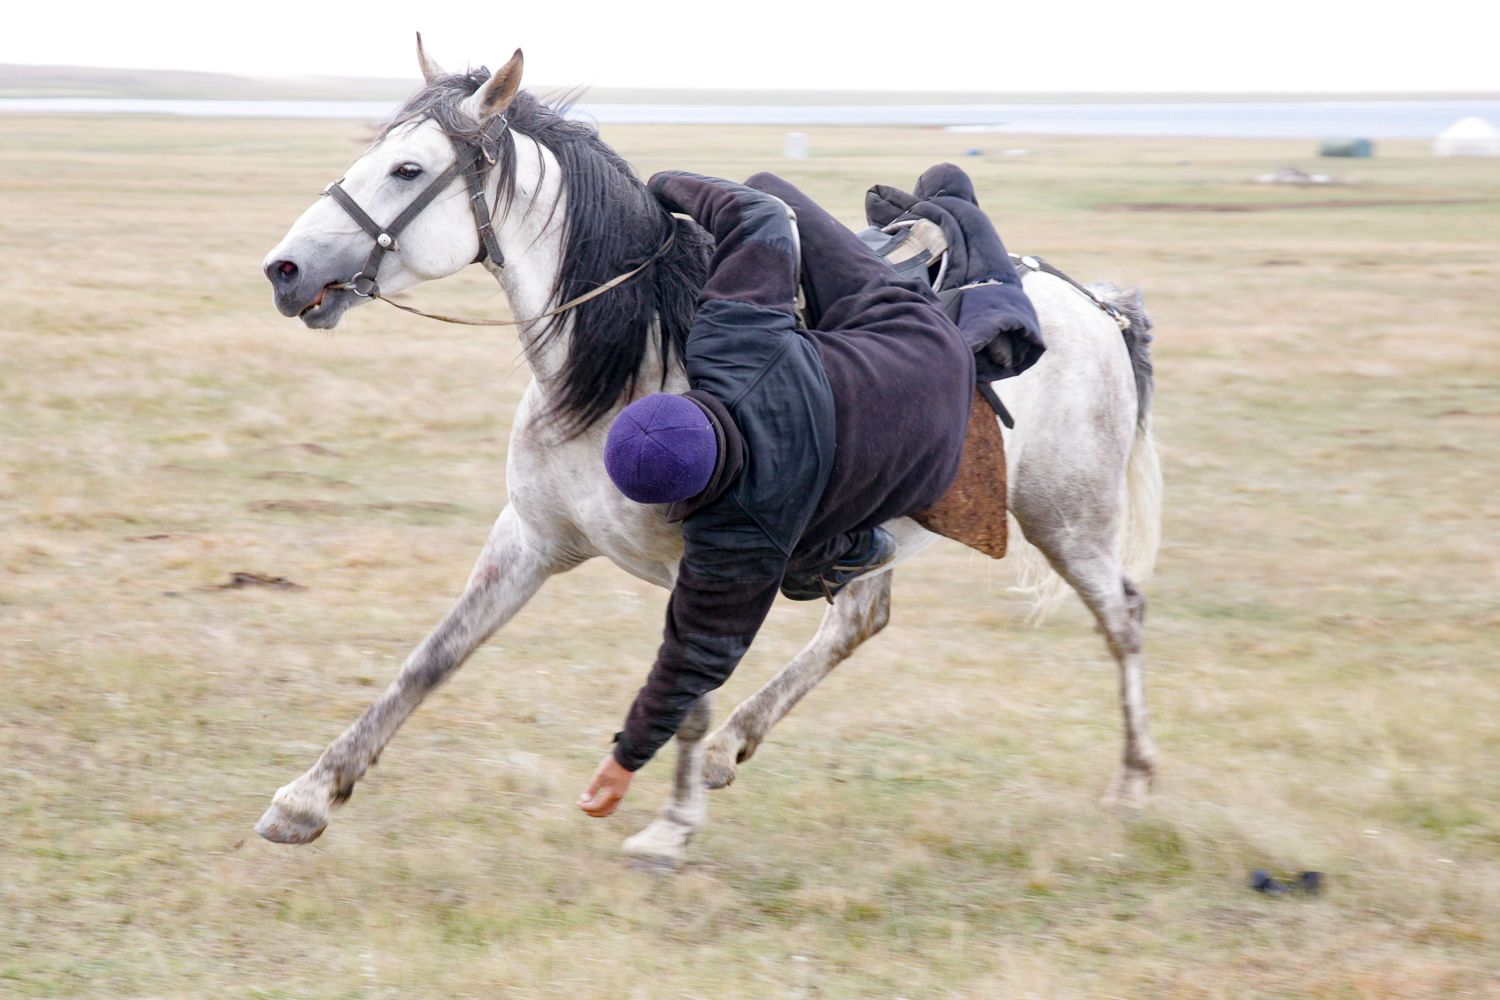 A boy on a horse playing nomad games in Kyrgyzstan & Kazakhstan Tour